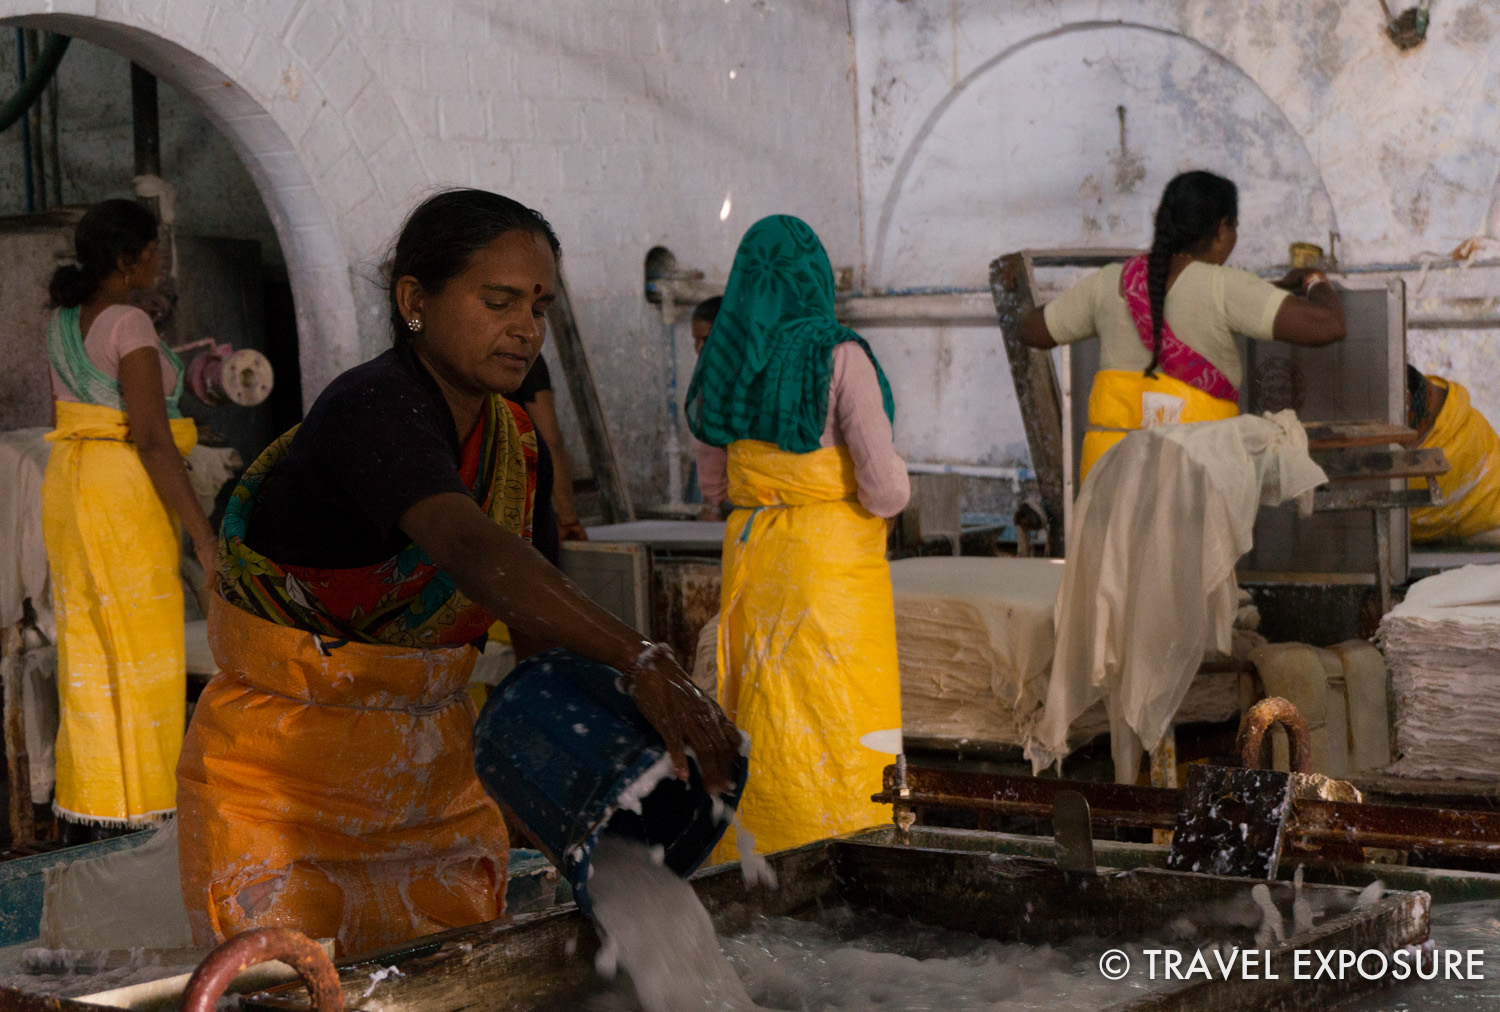 Tarragram, a paper making plant, set up to assist tribal women